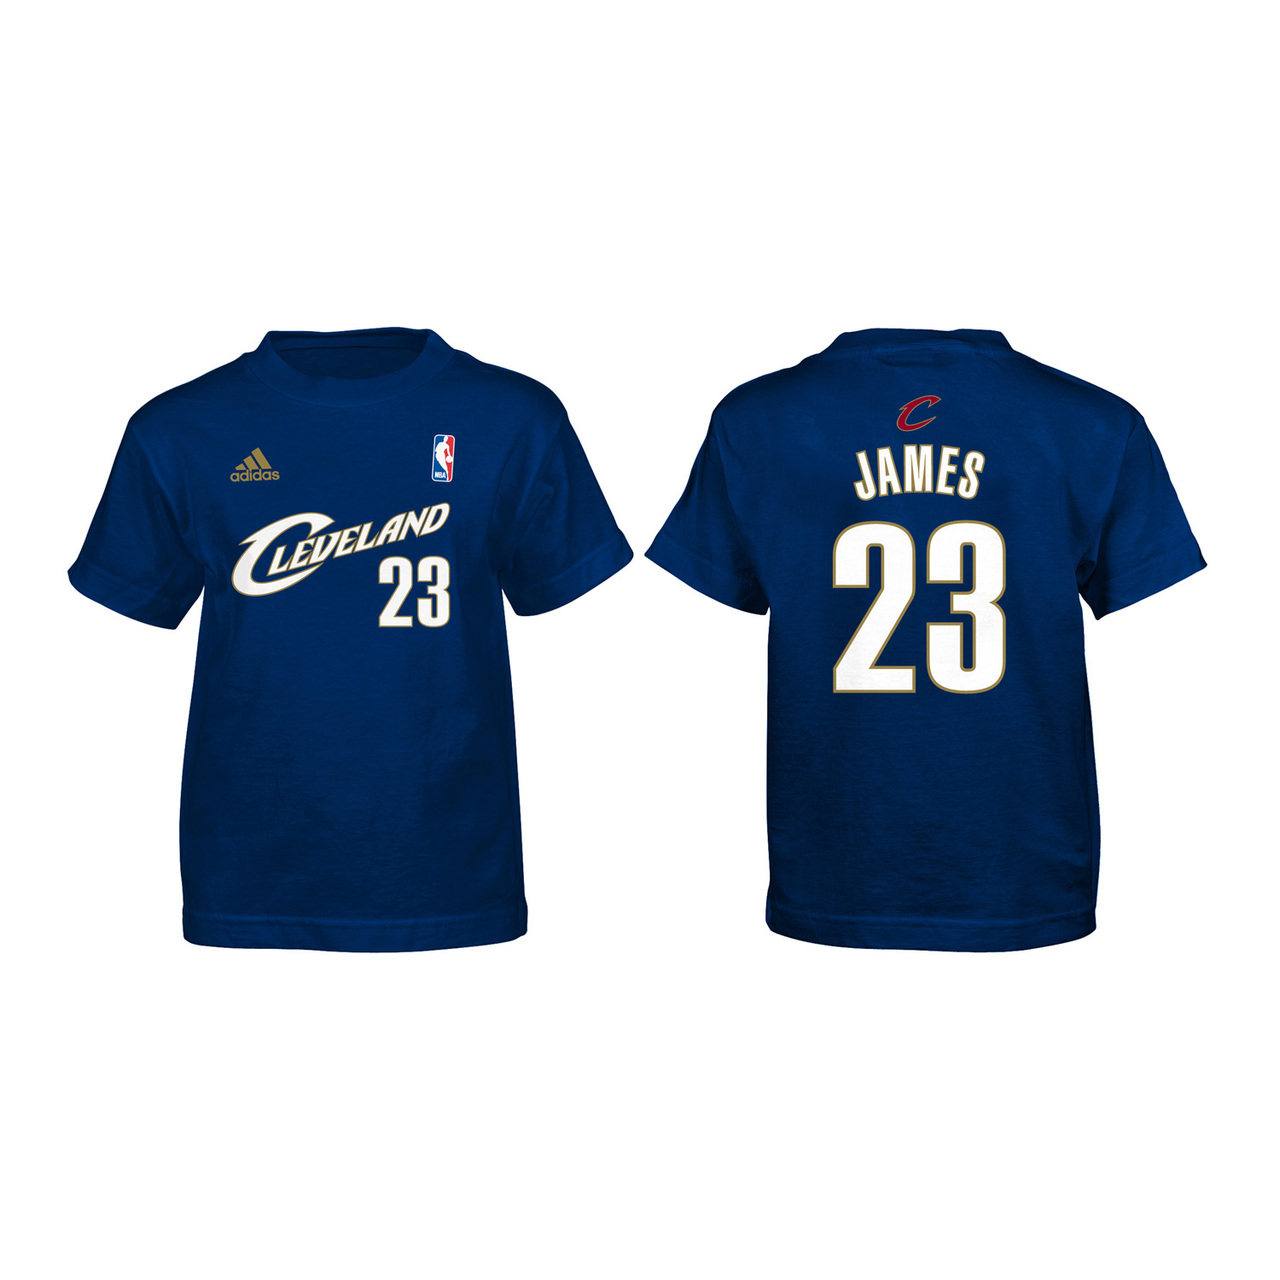 Cleveland Cavaliers Youth Lebron James Gametime Name and Number T-Shirt - Navy #23